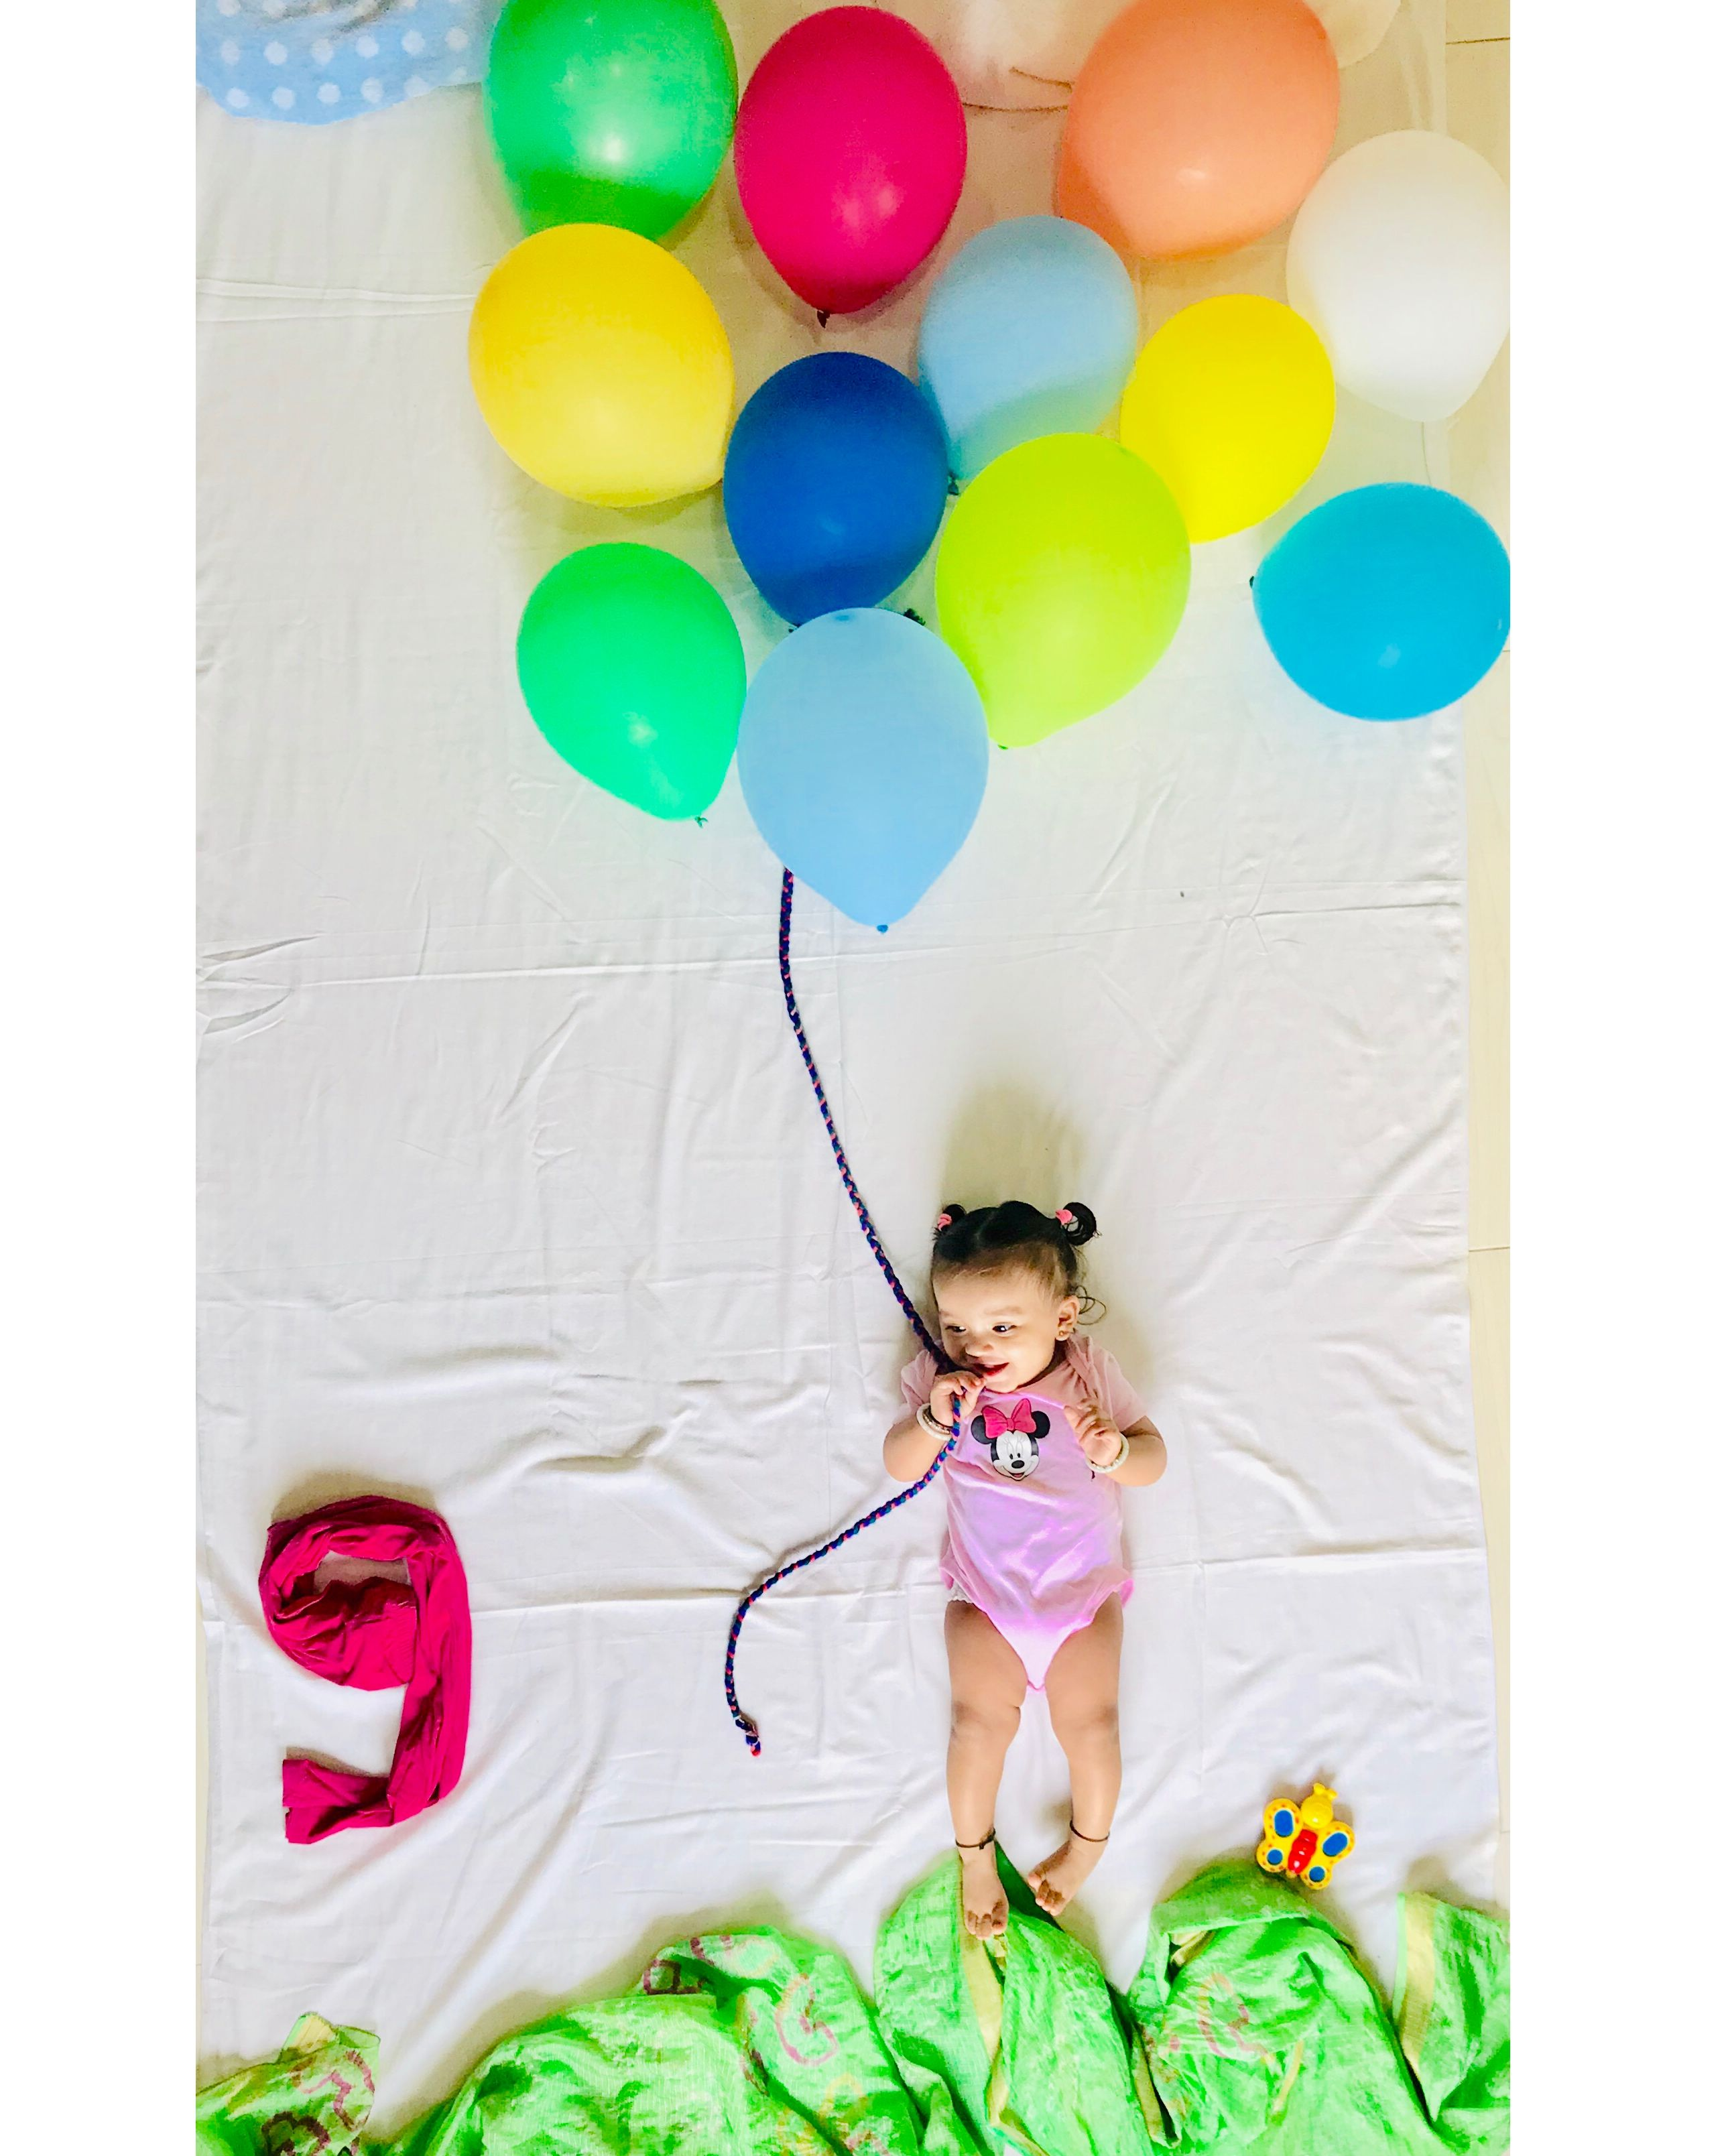 Happy 9th Month Birthday Baby : happy, month, birthday, Photo, Shoot, Months, Happy, Monsoon, Theme, #photography, #fashion, #wallpaper, #babyshooting, Photoshoot,, Photoshoot, Images